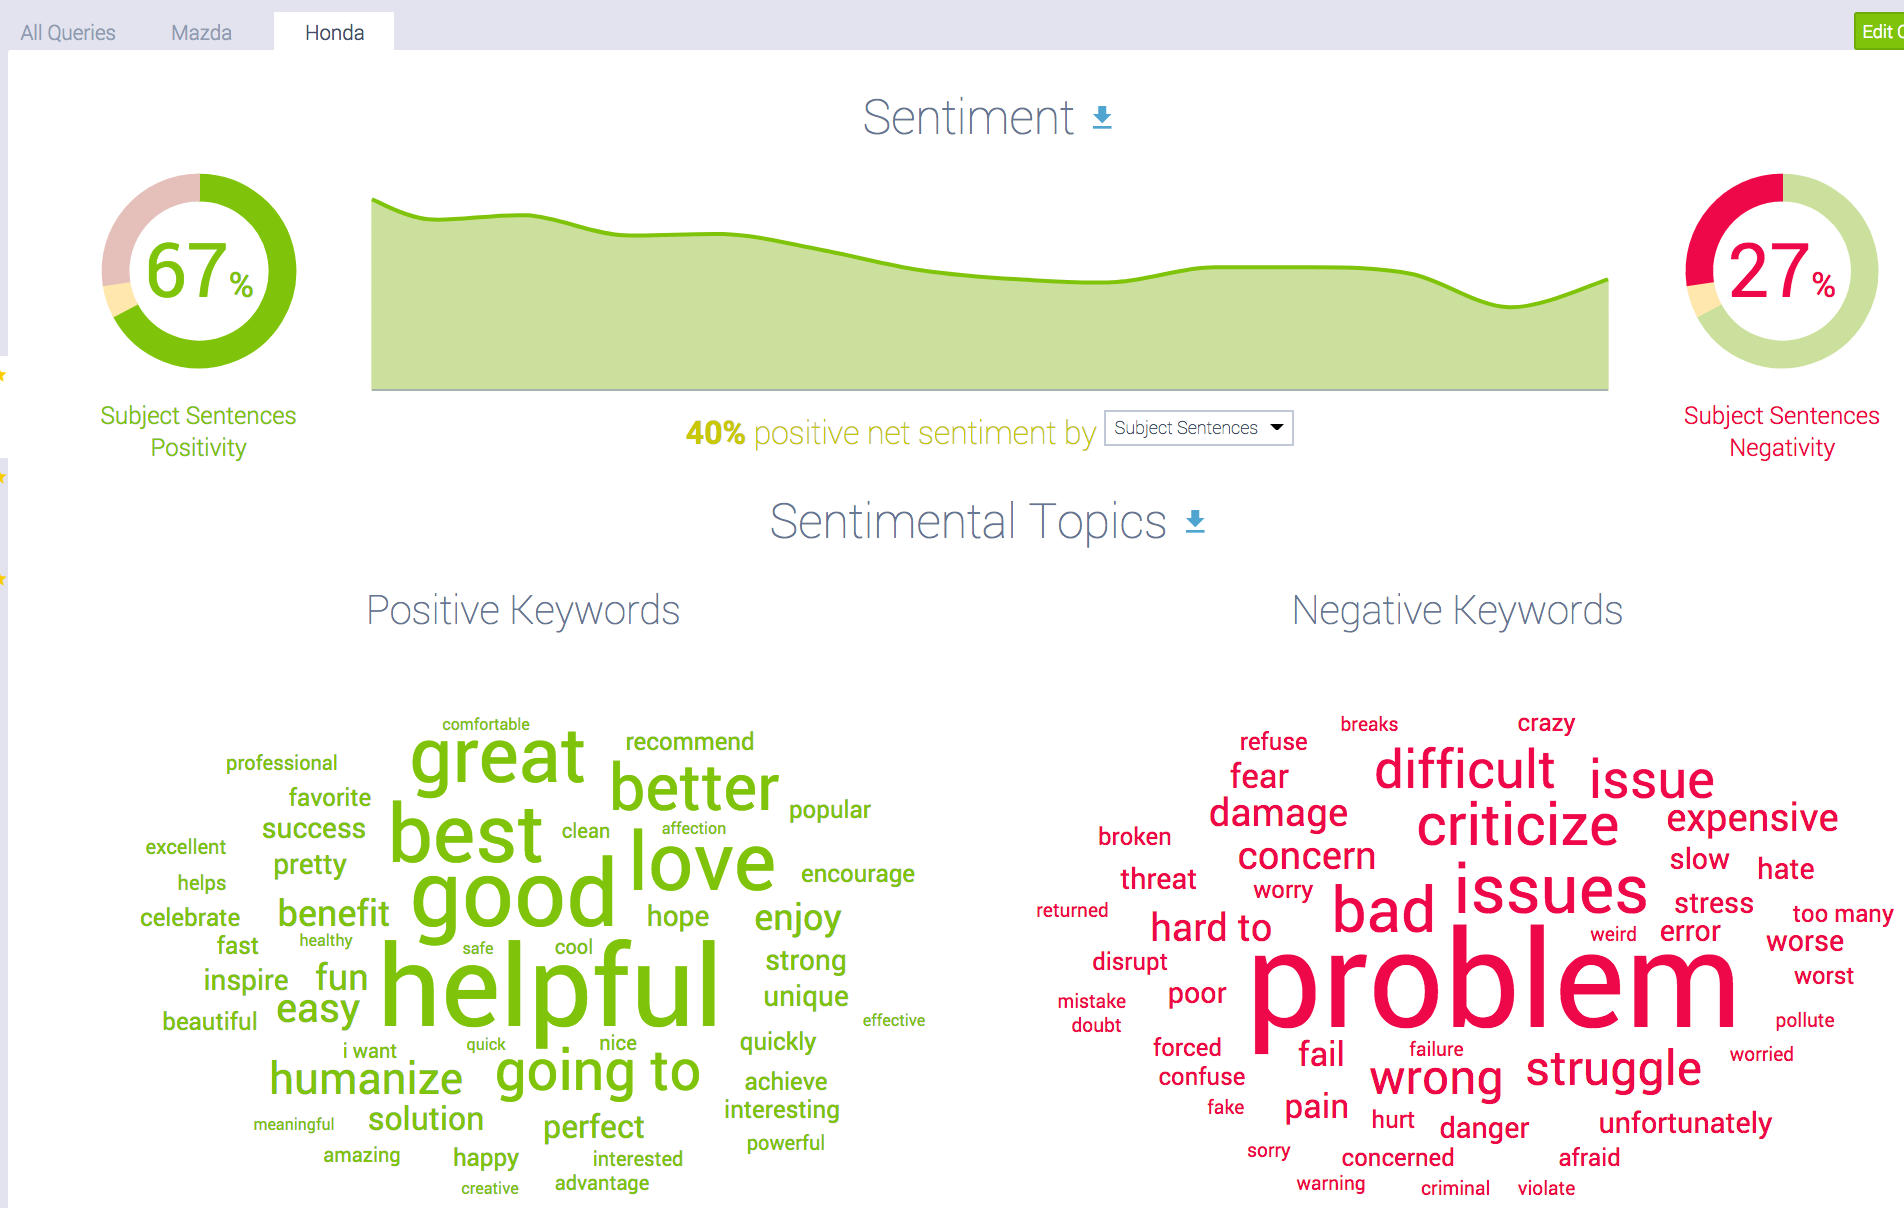 Honda sentiment (with word cloud) vs. Mazda.png